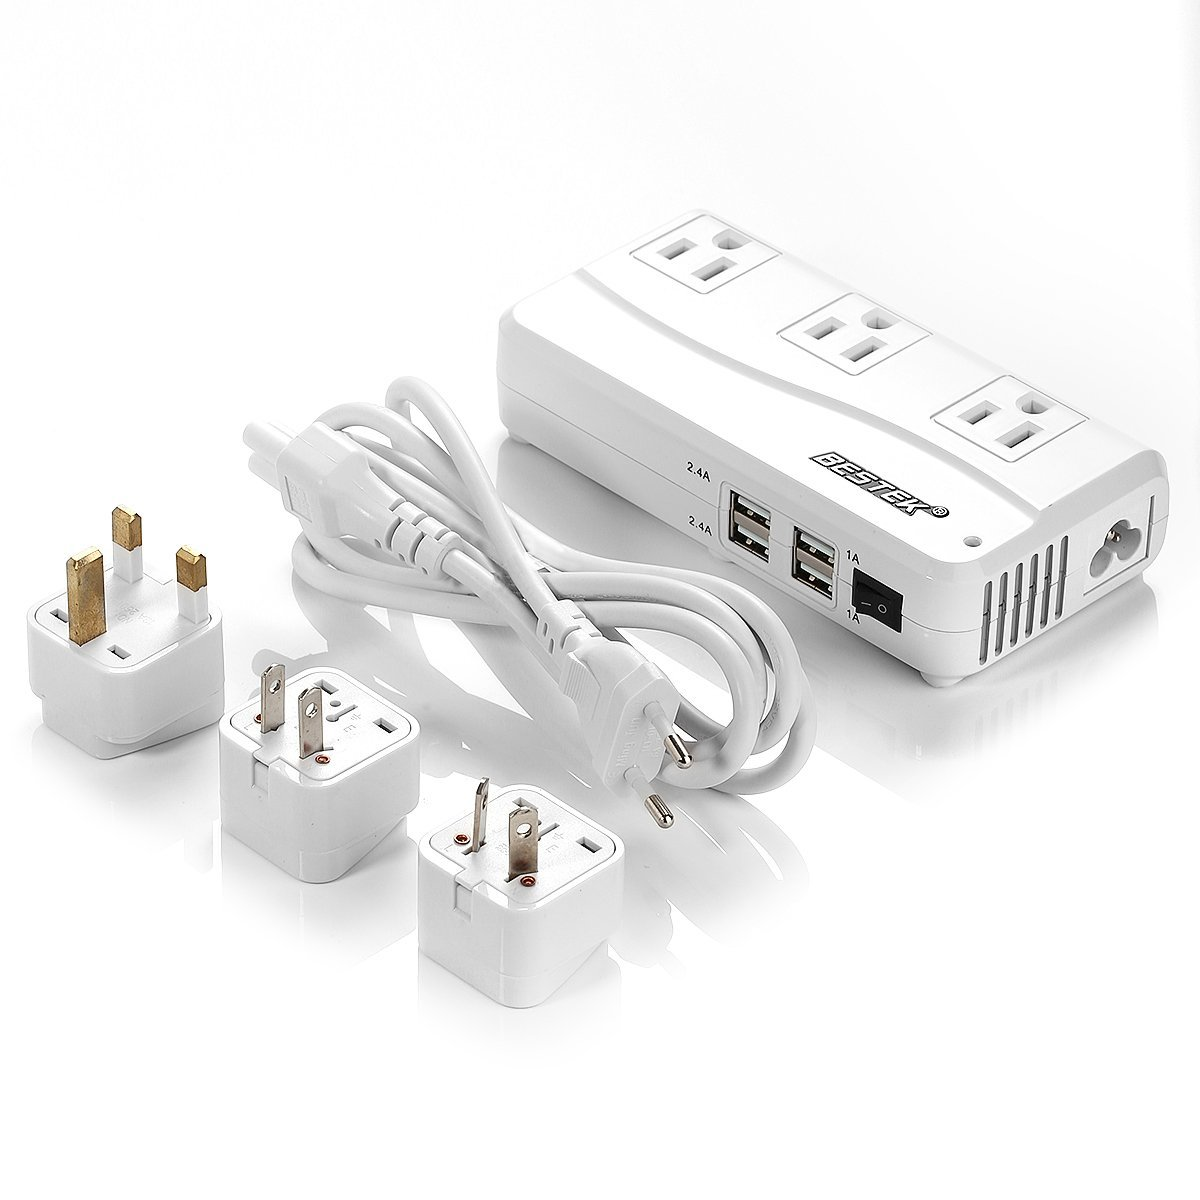 IGOGEER - Travel Power Adapter